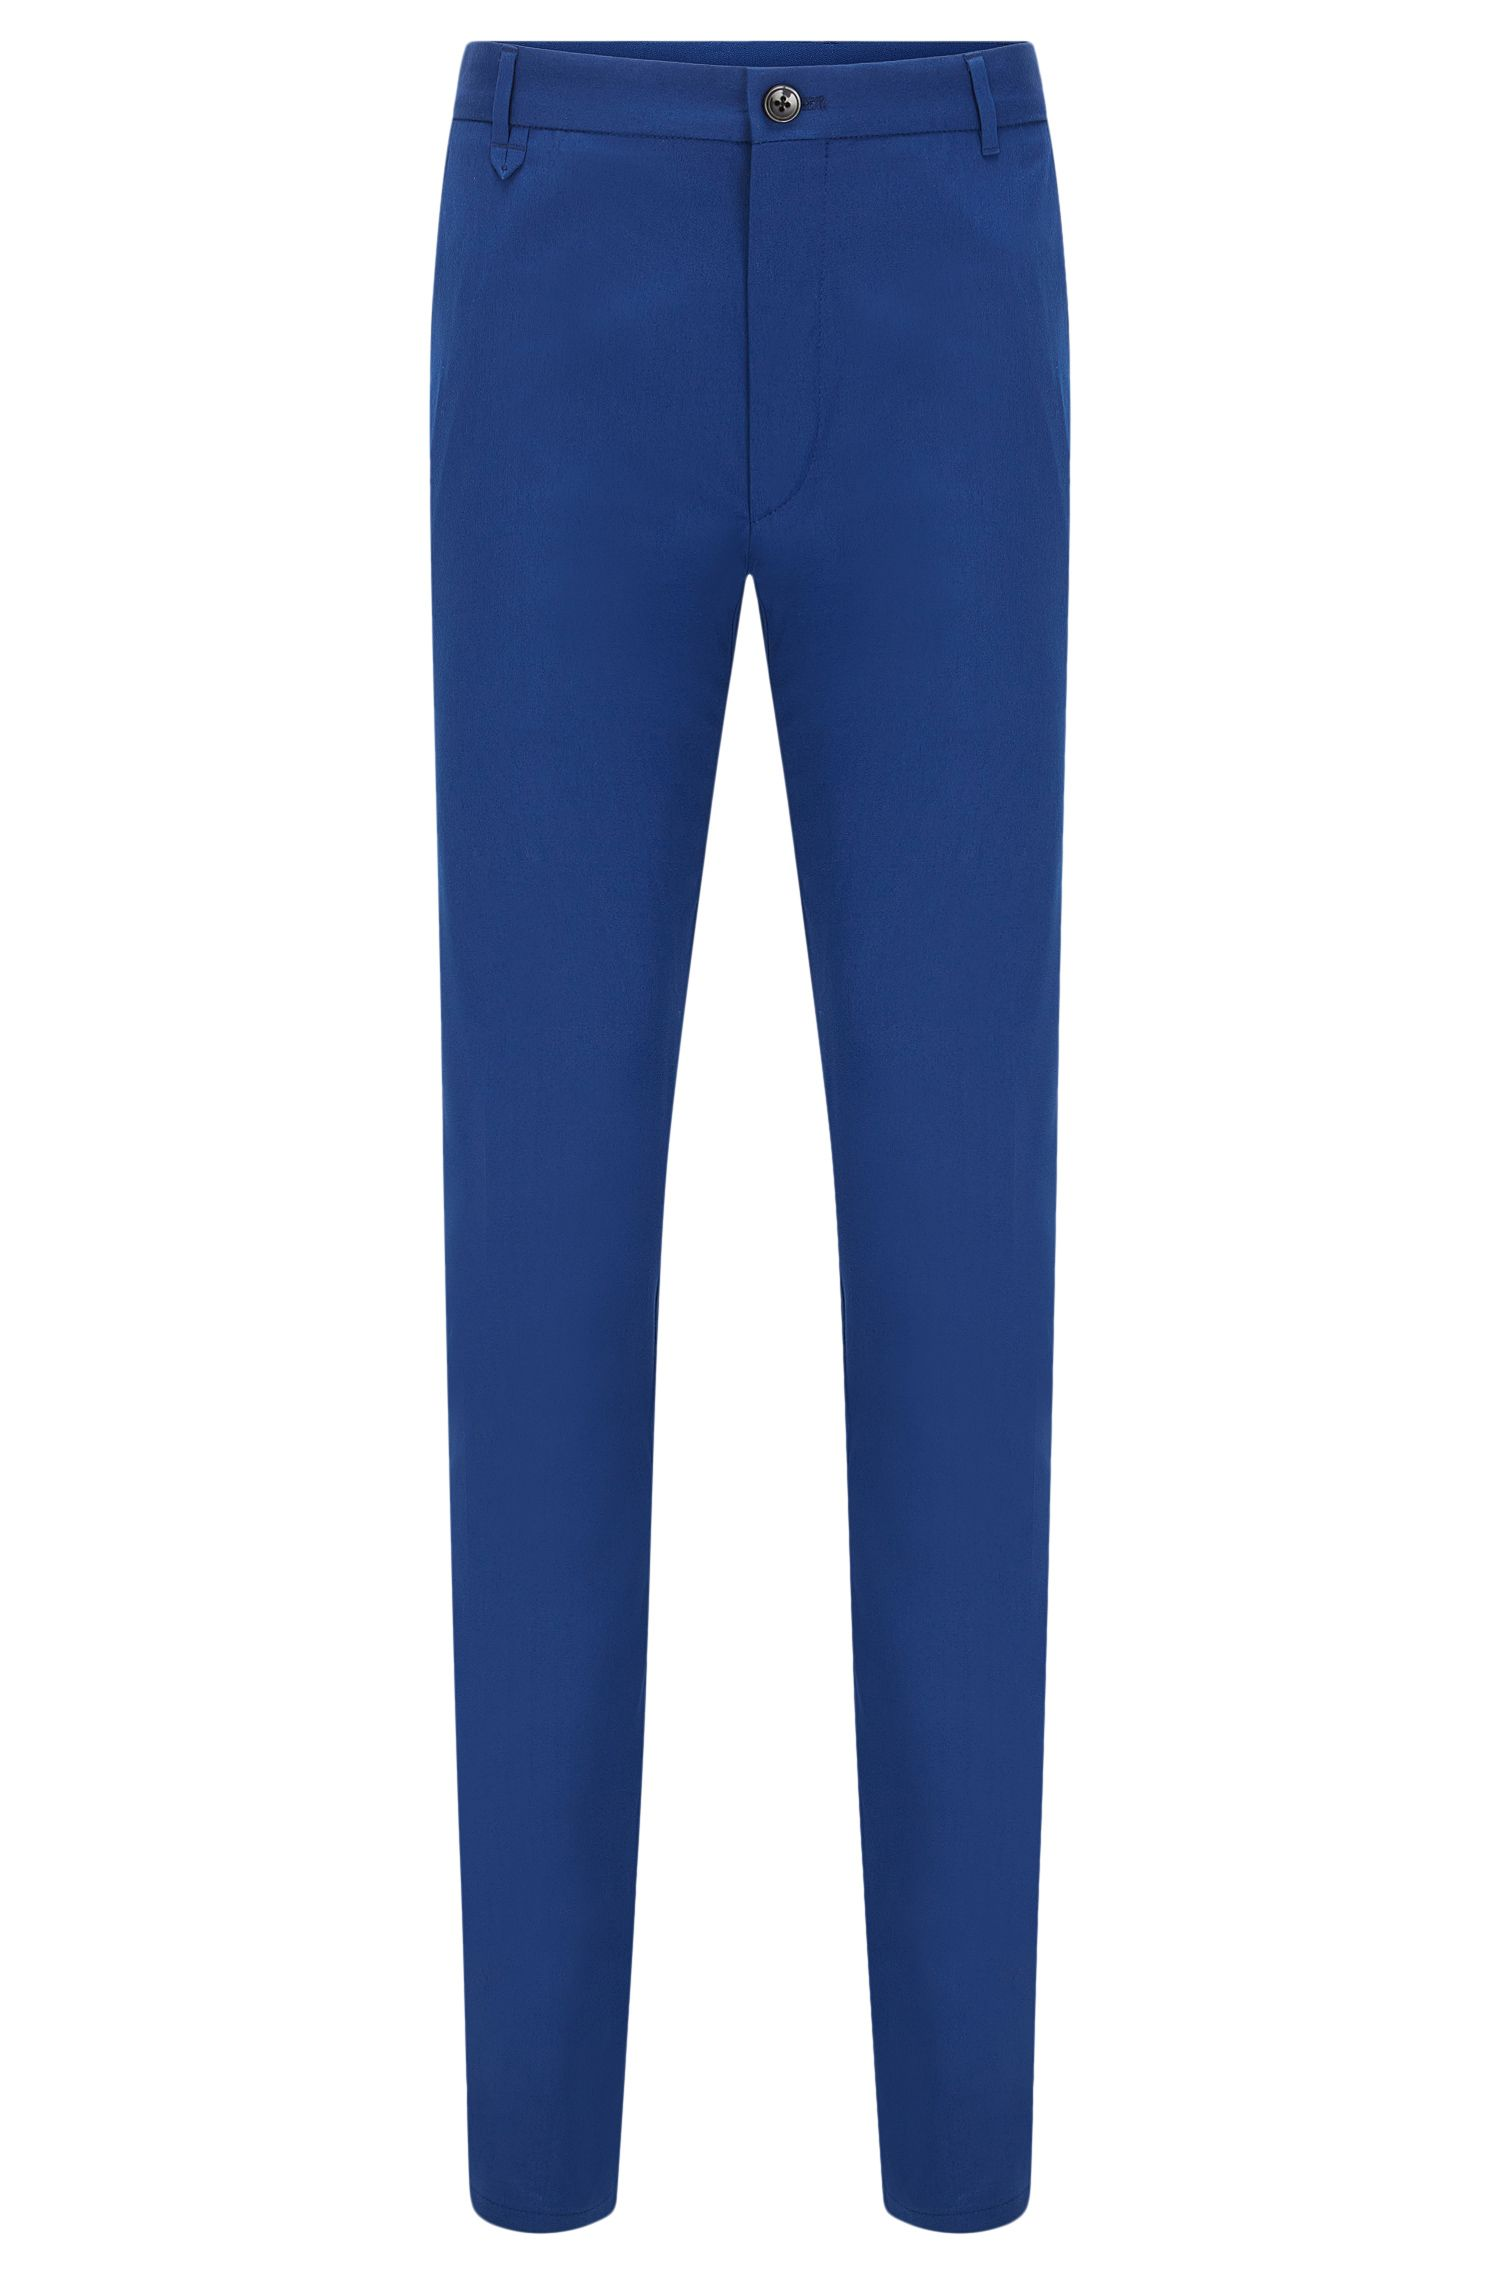 Extra-slim-fit trousers in stretch cotton